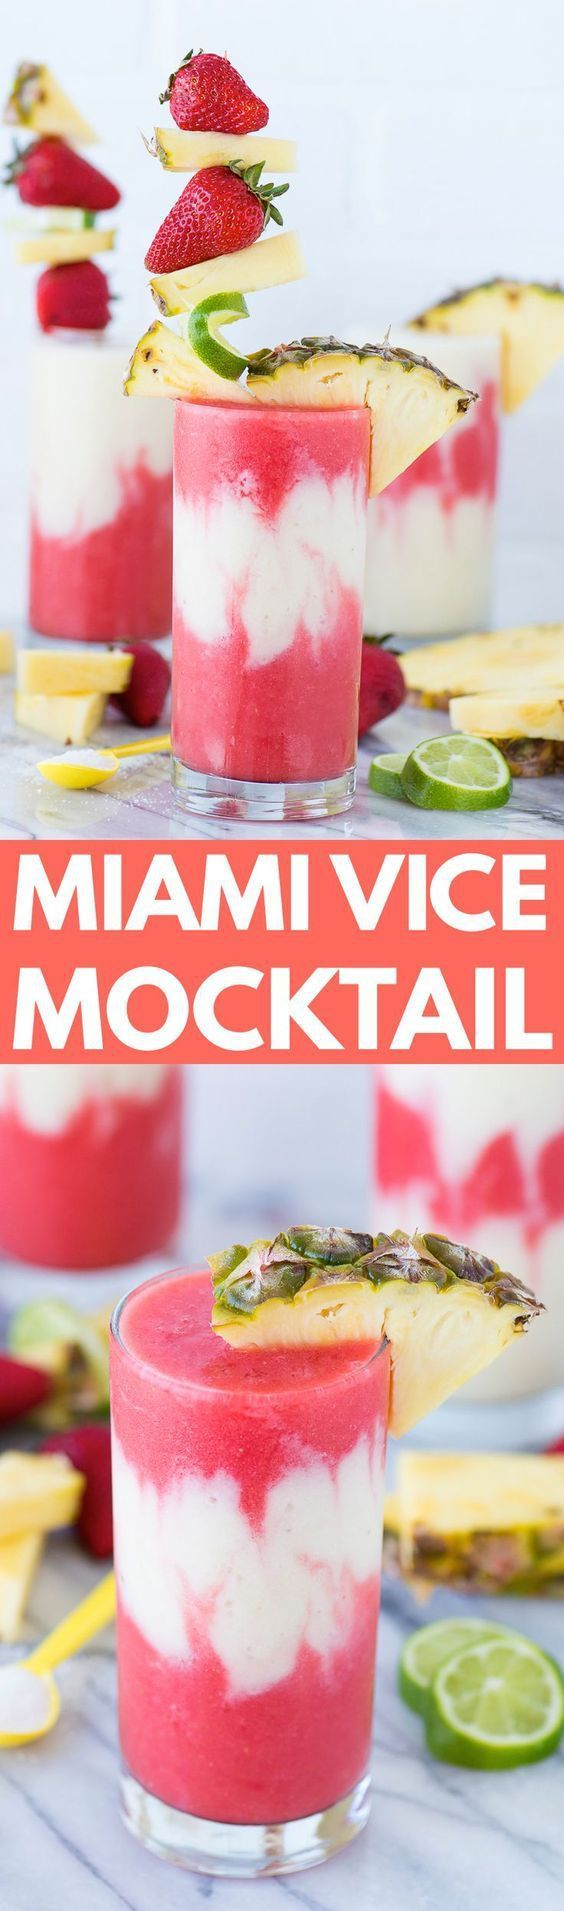 Tropical Miami Vice Mocktail Non-Alcoholic Frozen Drink - The best miami vice mocktail! Half strawberry daiquiri half pina colada layered in one glass. A tropical non-alcoholic lava flow! The BEST Easy Non-Alcoholic Drinks Recipes - Creative Mocktails and Family Friendly